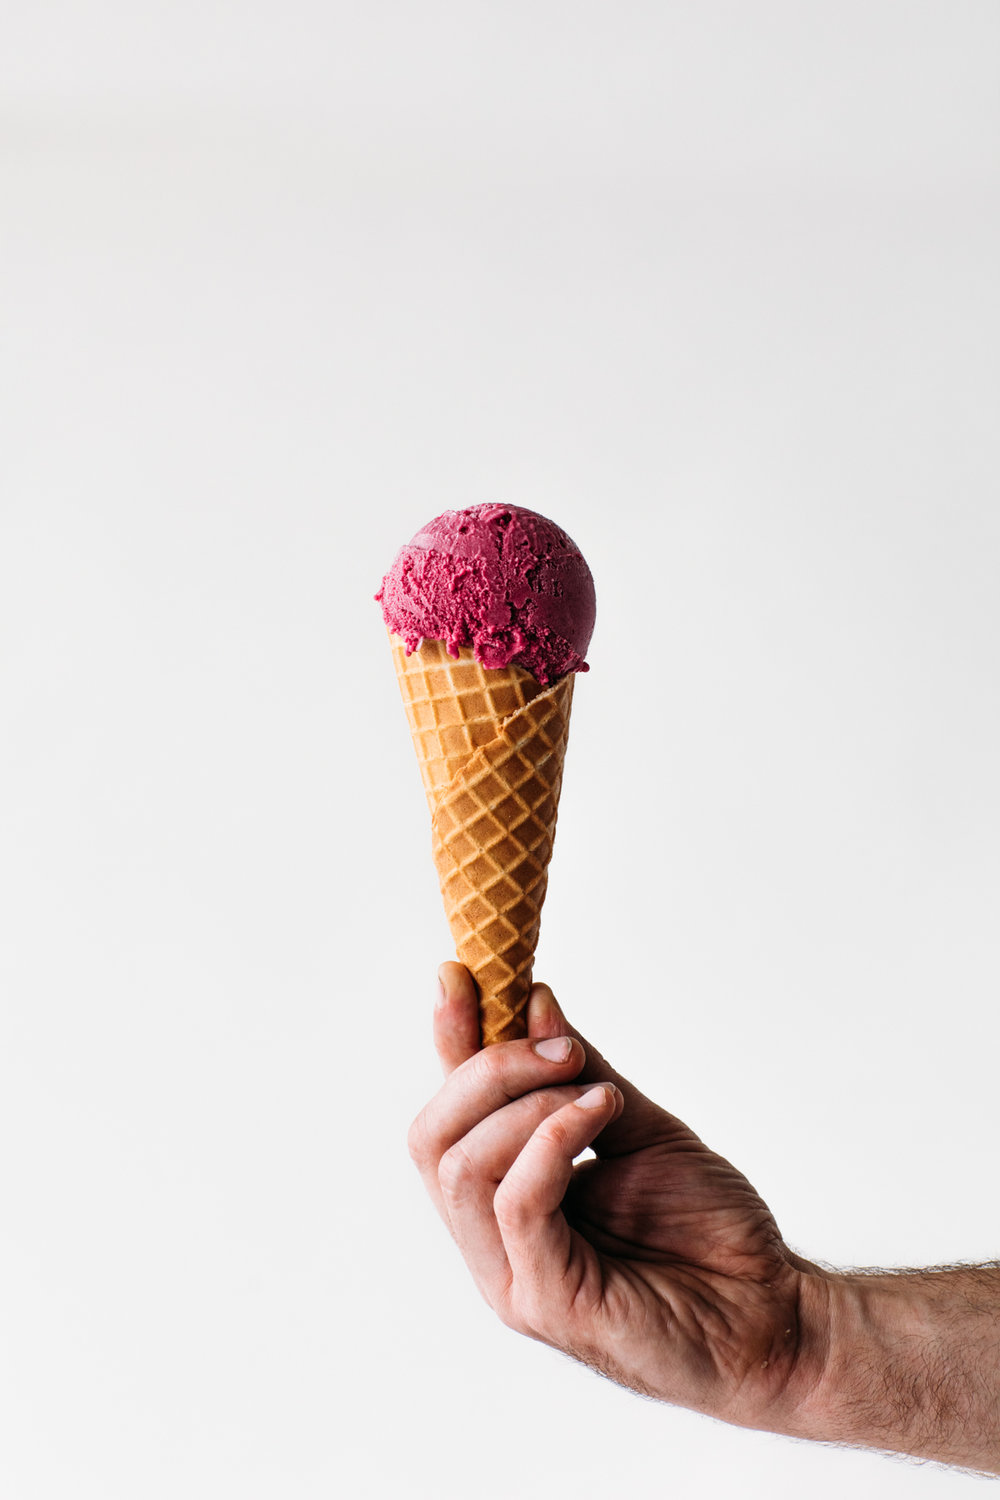 icecream-pink+cone.jpg